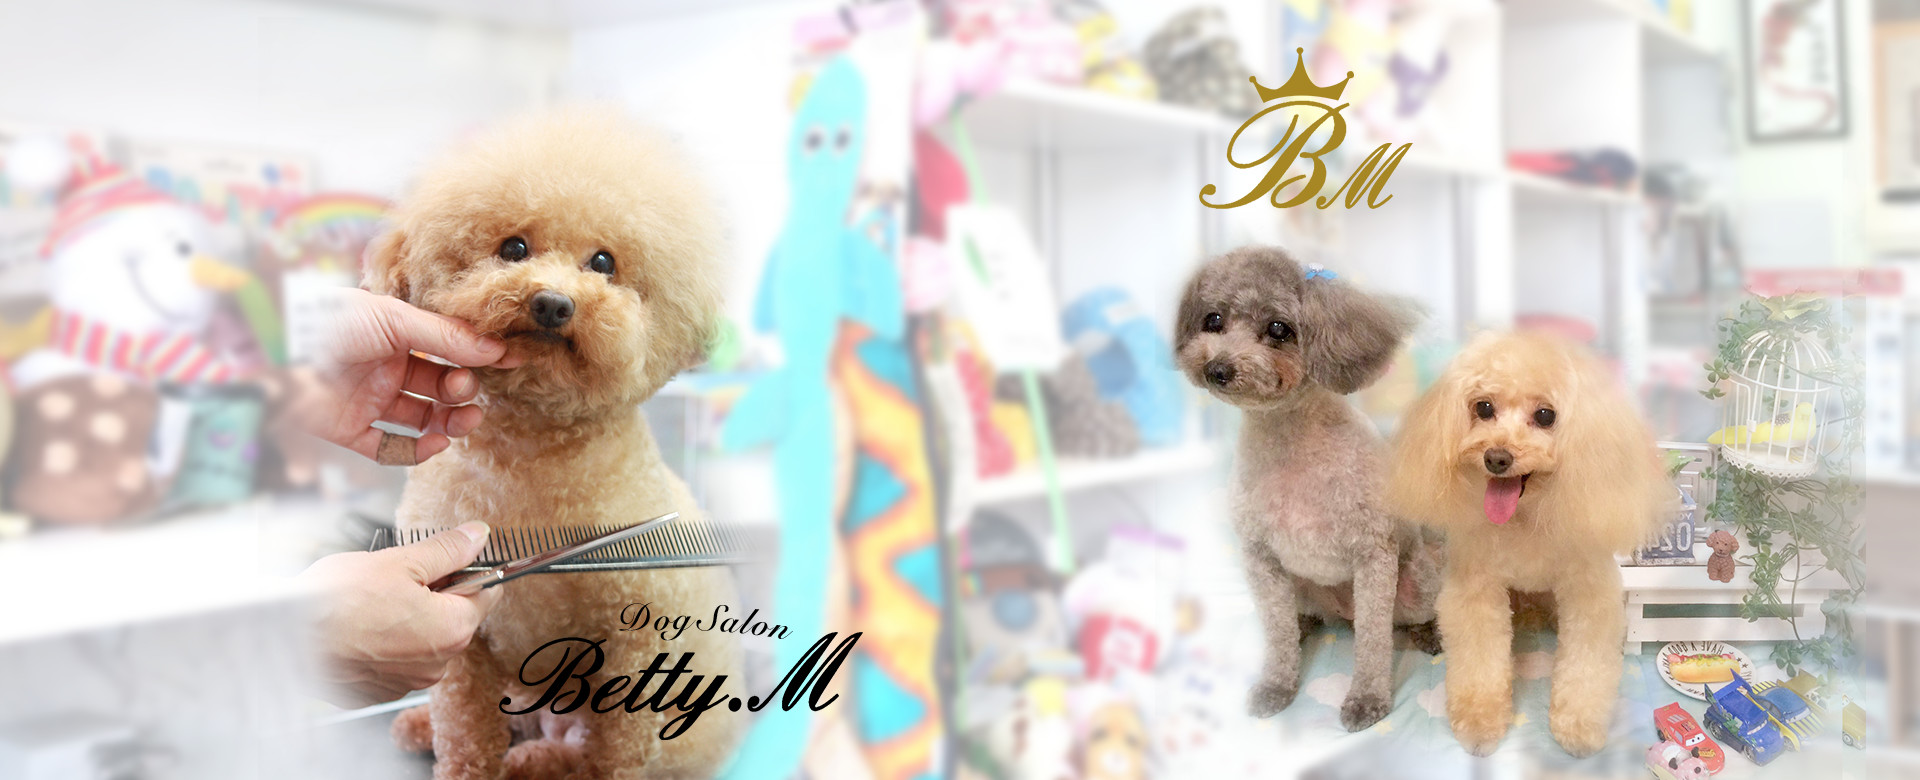 Dogsalon Betty.M